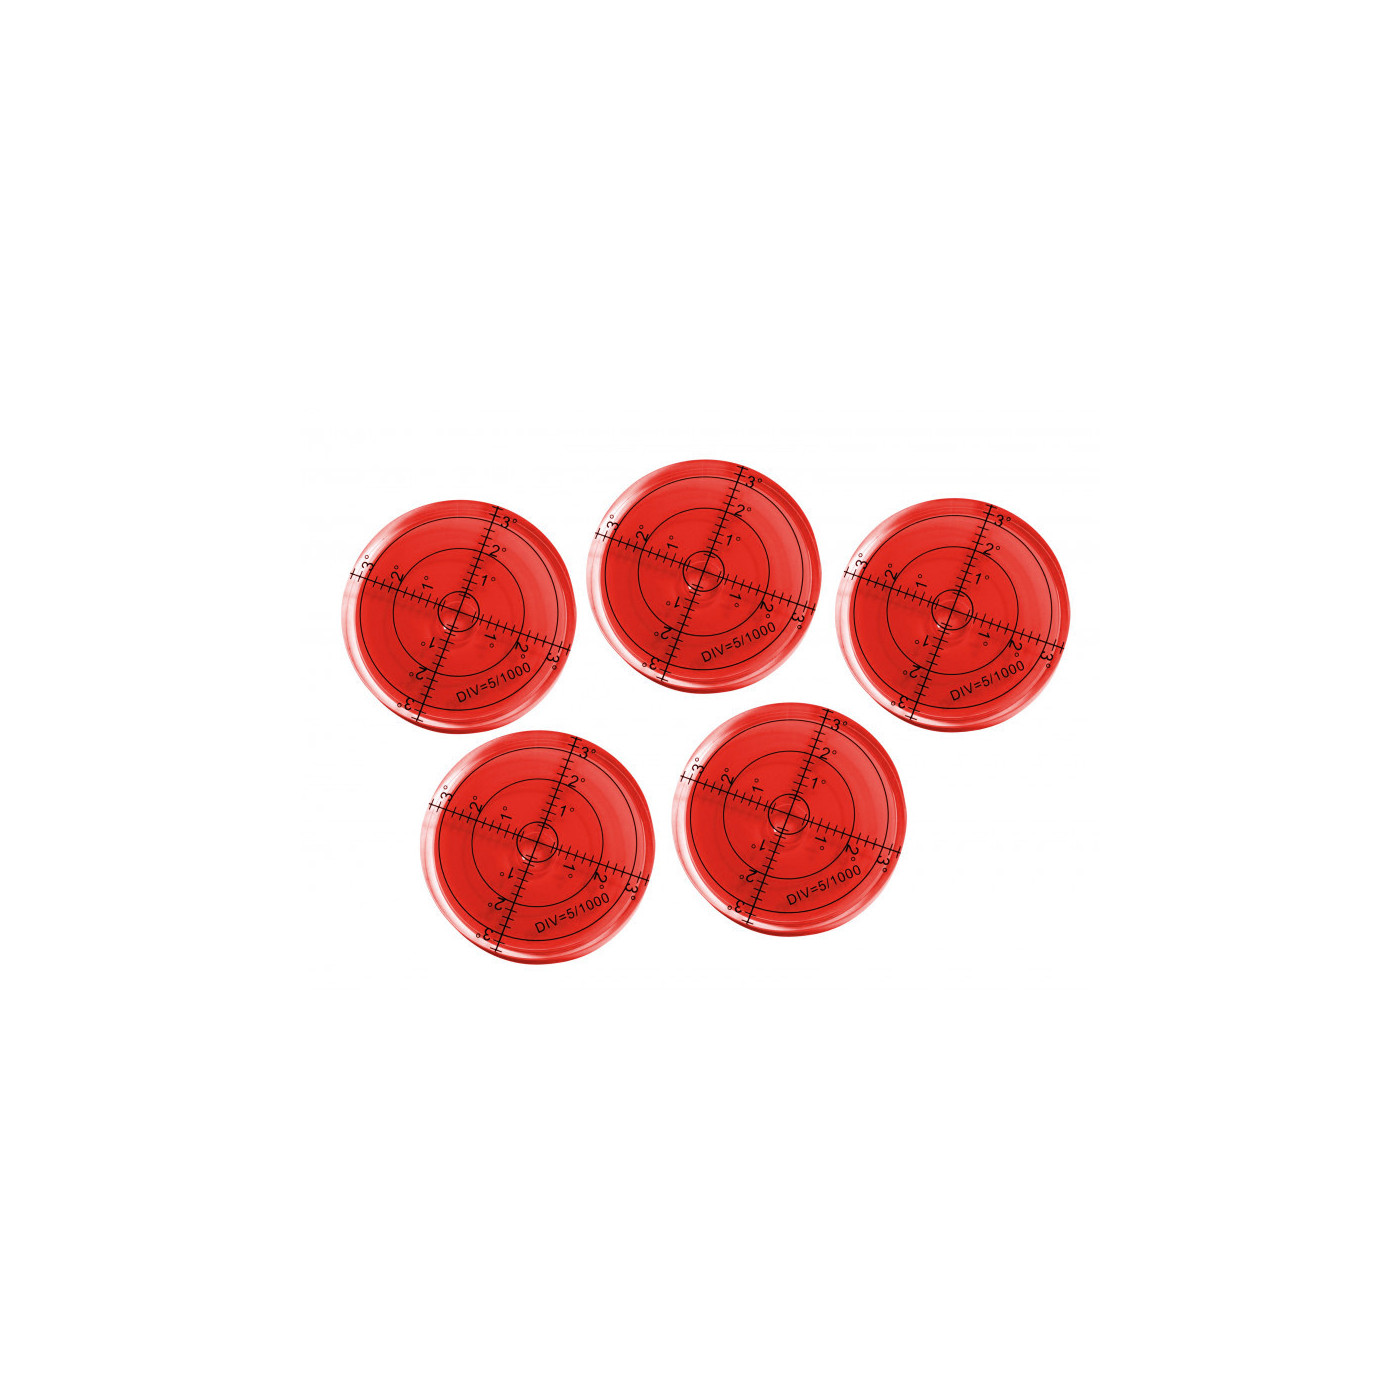 Set of 5 round bubble levels (66x11 mm, red)